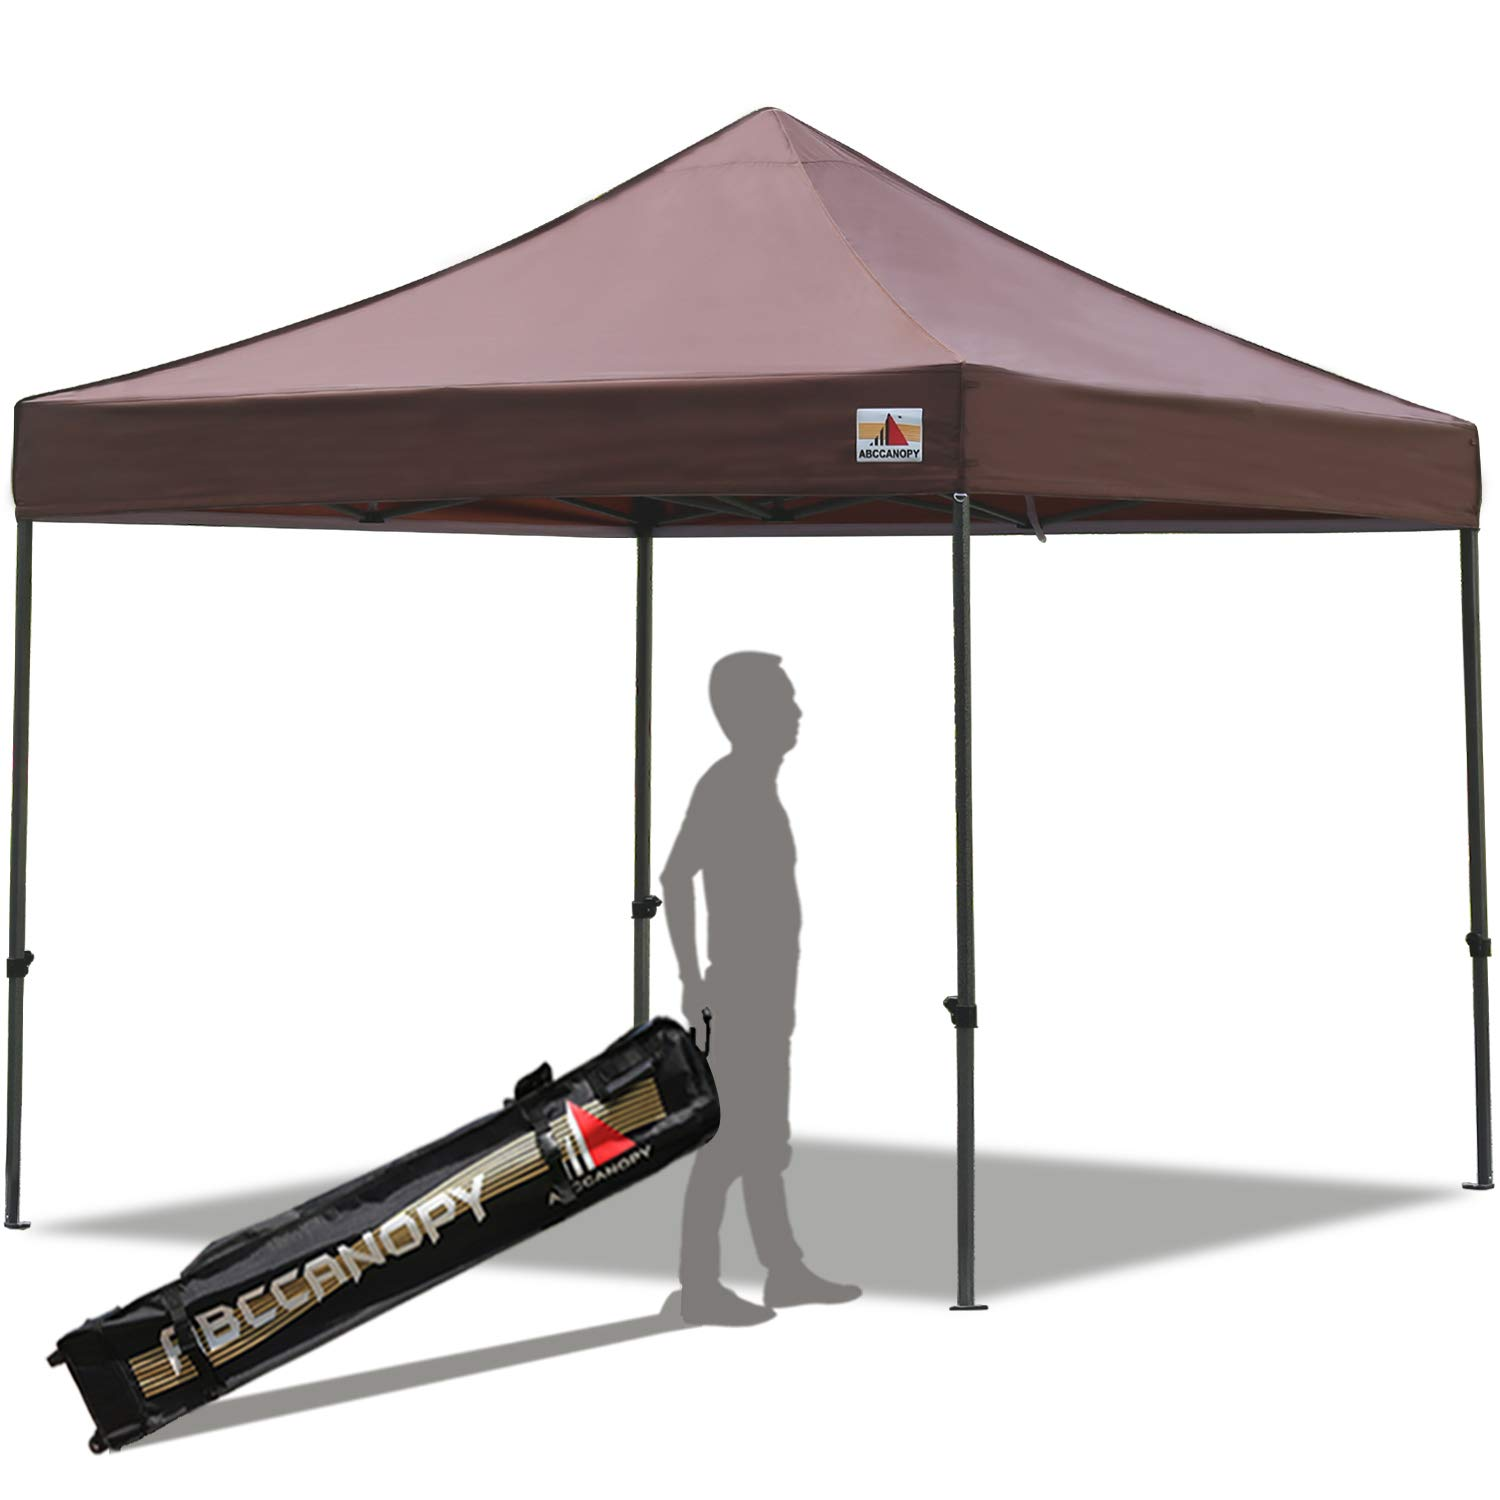 ABCCANOPY Pop up Canopy Tent Commercial Instant Shelter with Wheeled Carry Bag, 10x10 FT Brown